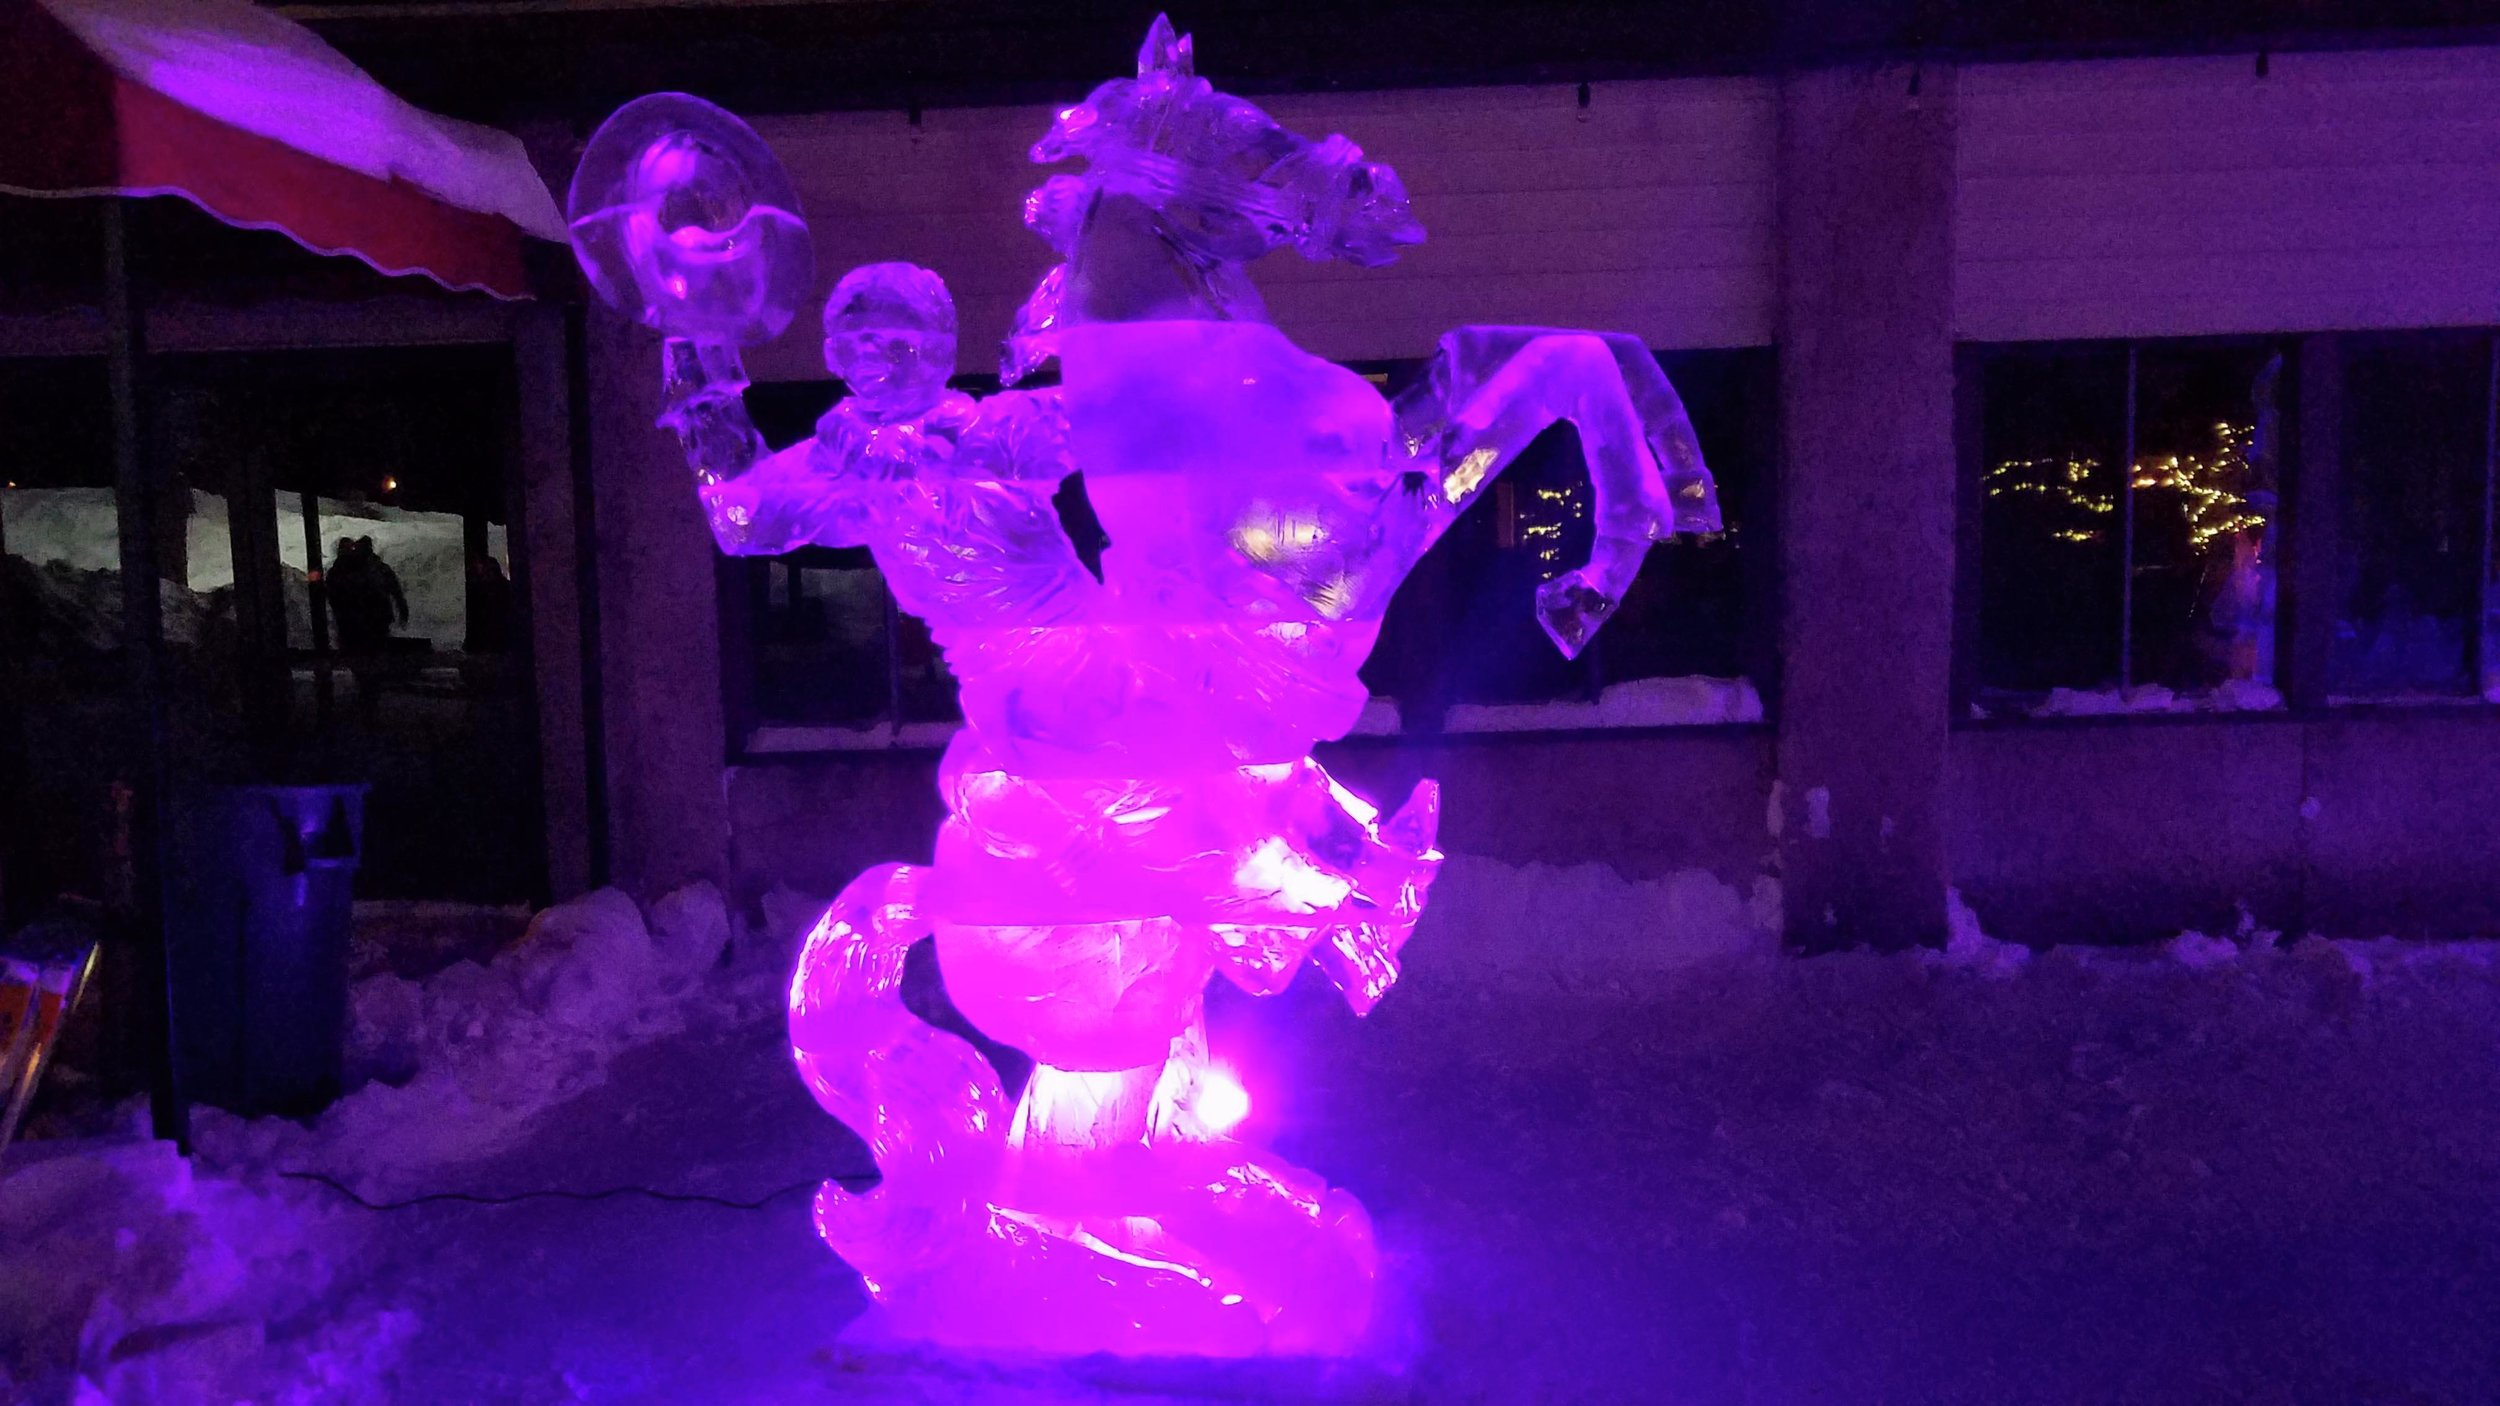 """The completed """"Bucking Cowboy"""" sculpture was quite a sight later that evening, when the colors of the LED lights really showed it off. (Vicki Gerdes / Tribune)"""